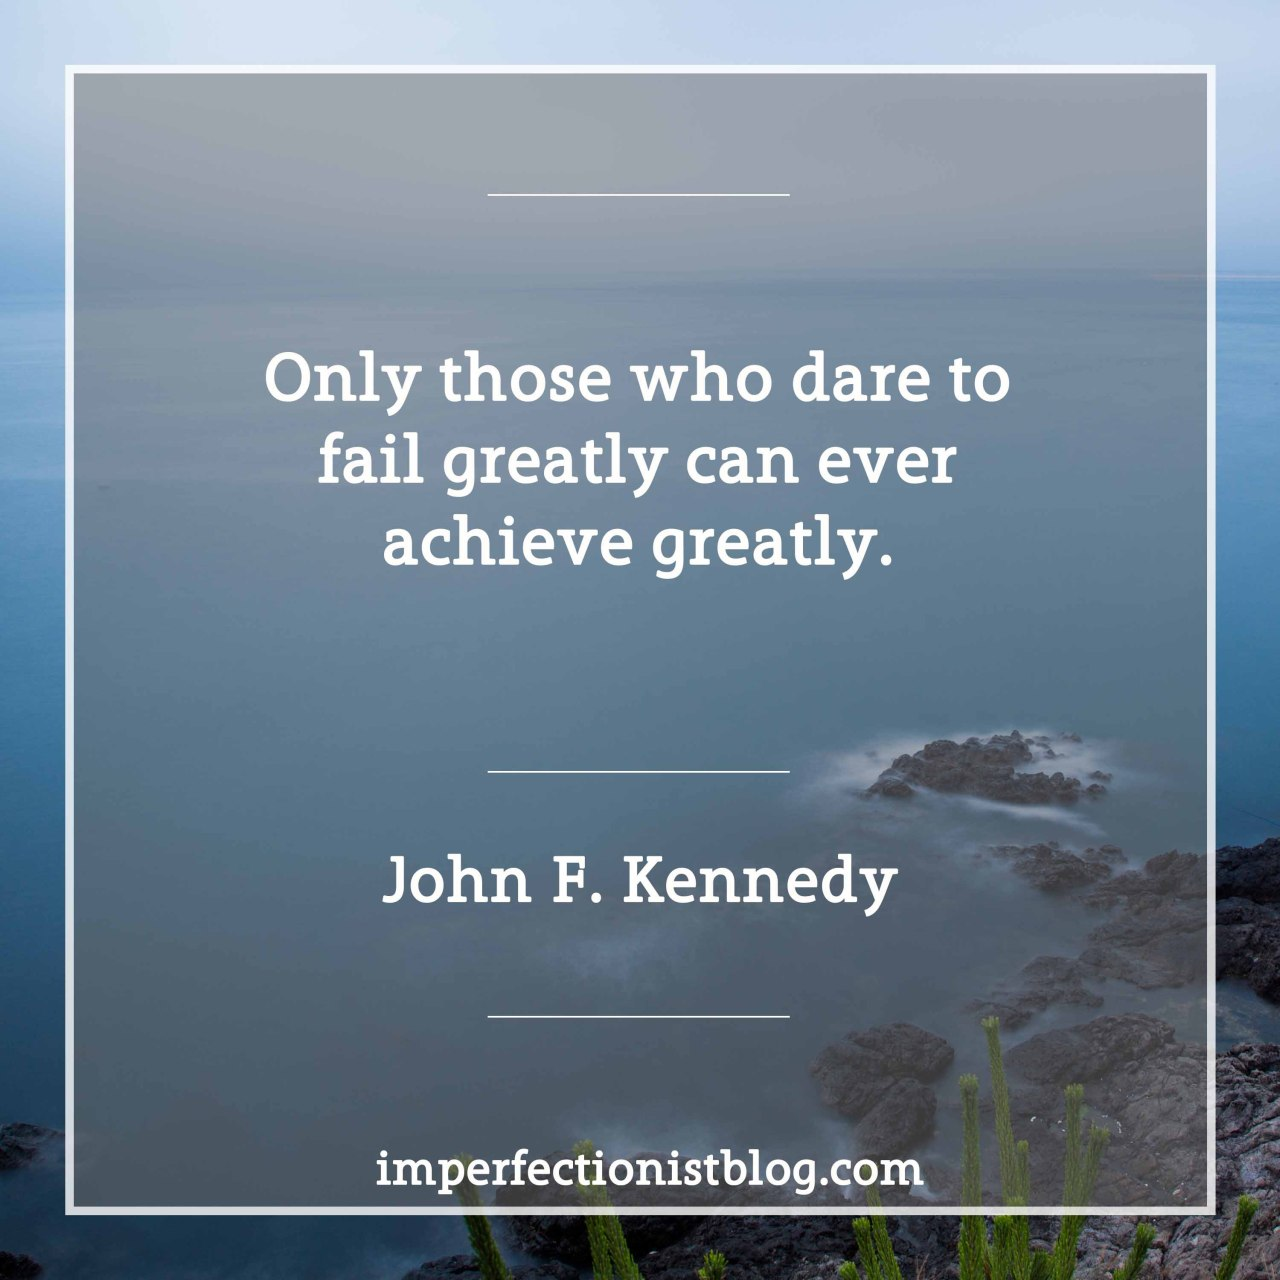 """…only those who dare to fail greatly can ever achieve greatly."" -John F. Kennedy (Day of Affirmation Address, University of Capetown, Capetown, South Africa, June 6, 1966)https://www.jfklibrary.org/Research/Research-Aids/Ready-Reference/RFK-Speeches/Day-of-Affirmation-Address-as-delivered.aspx"